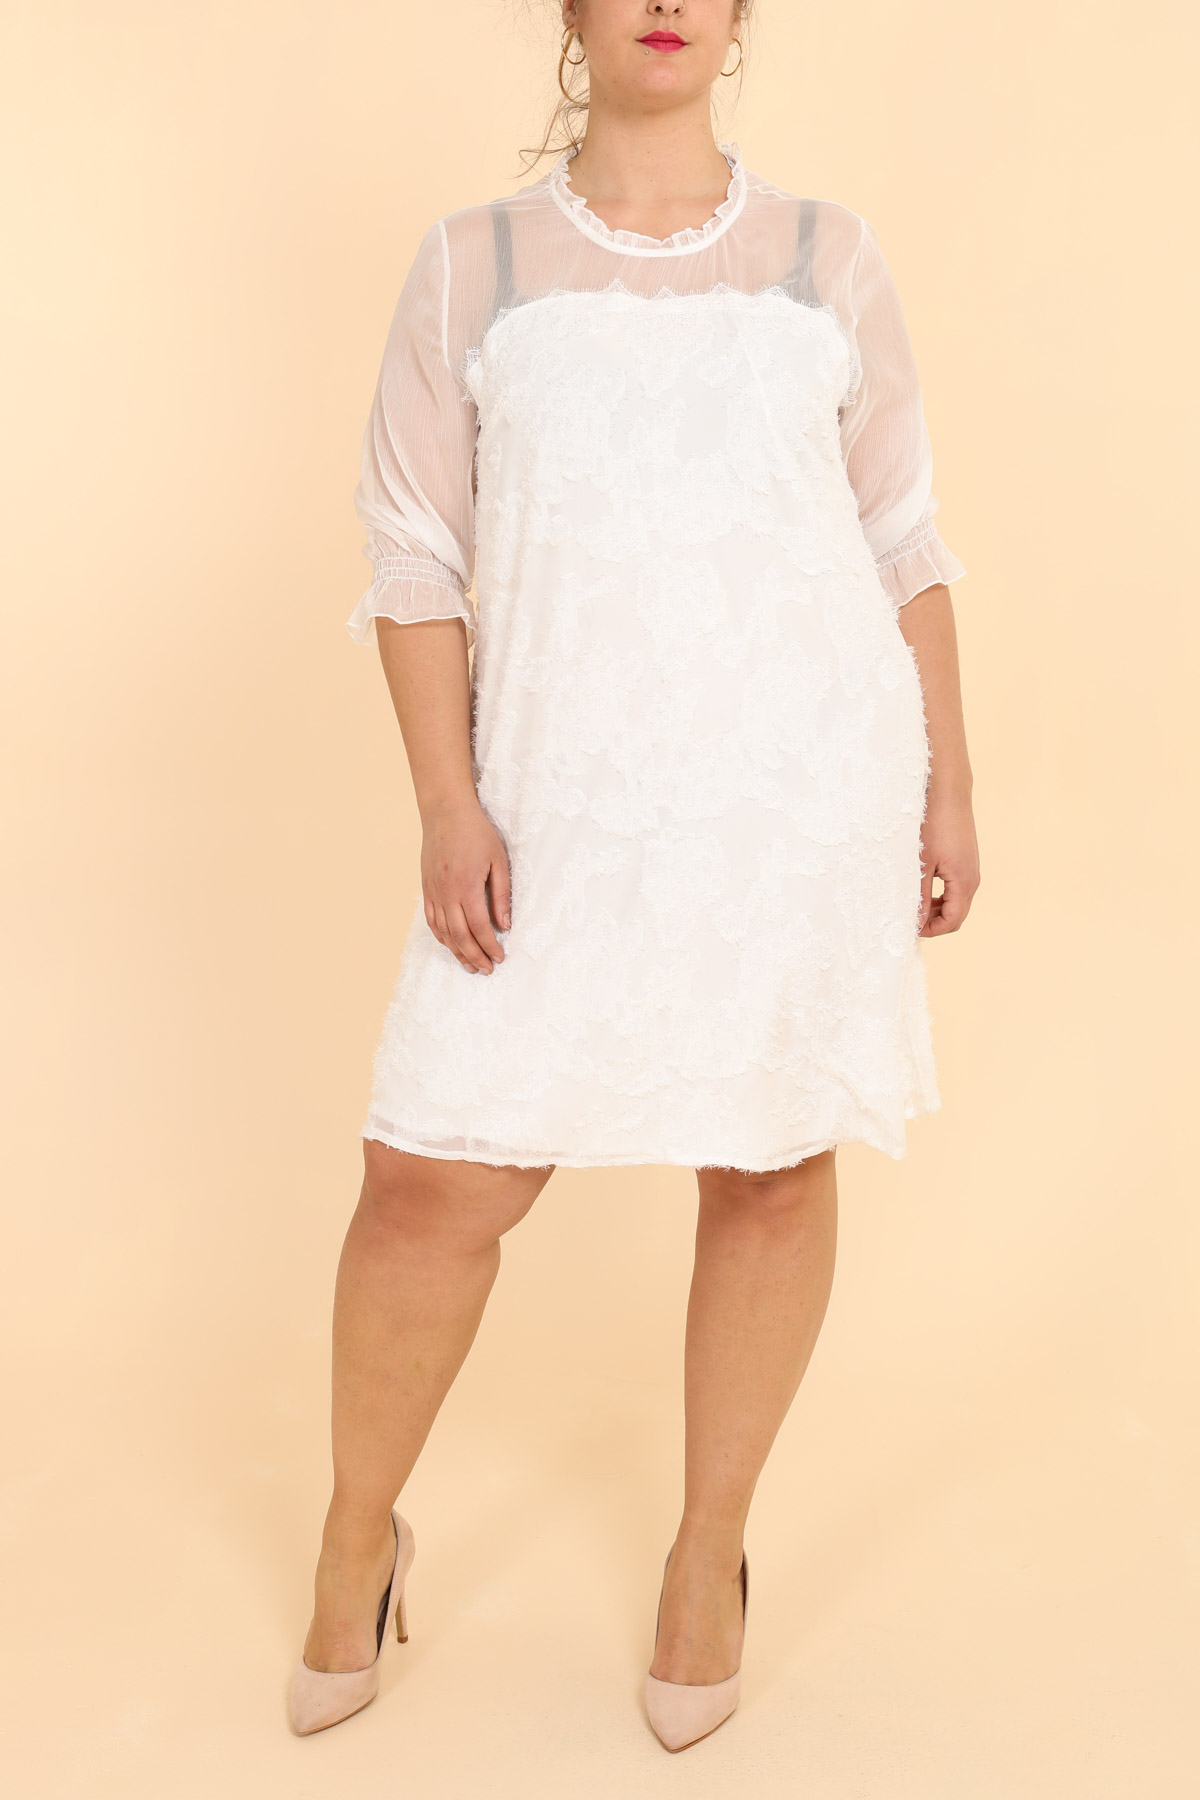 robe grande taille femme pomme rouge c6190 blanc 42-52